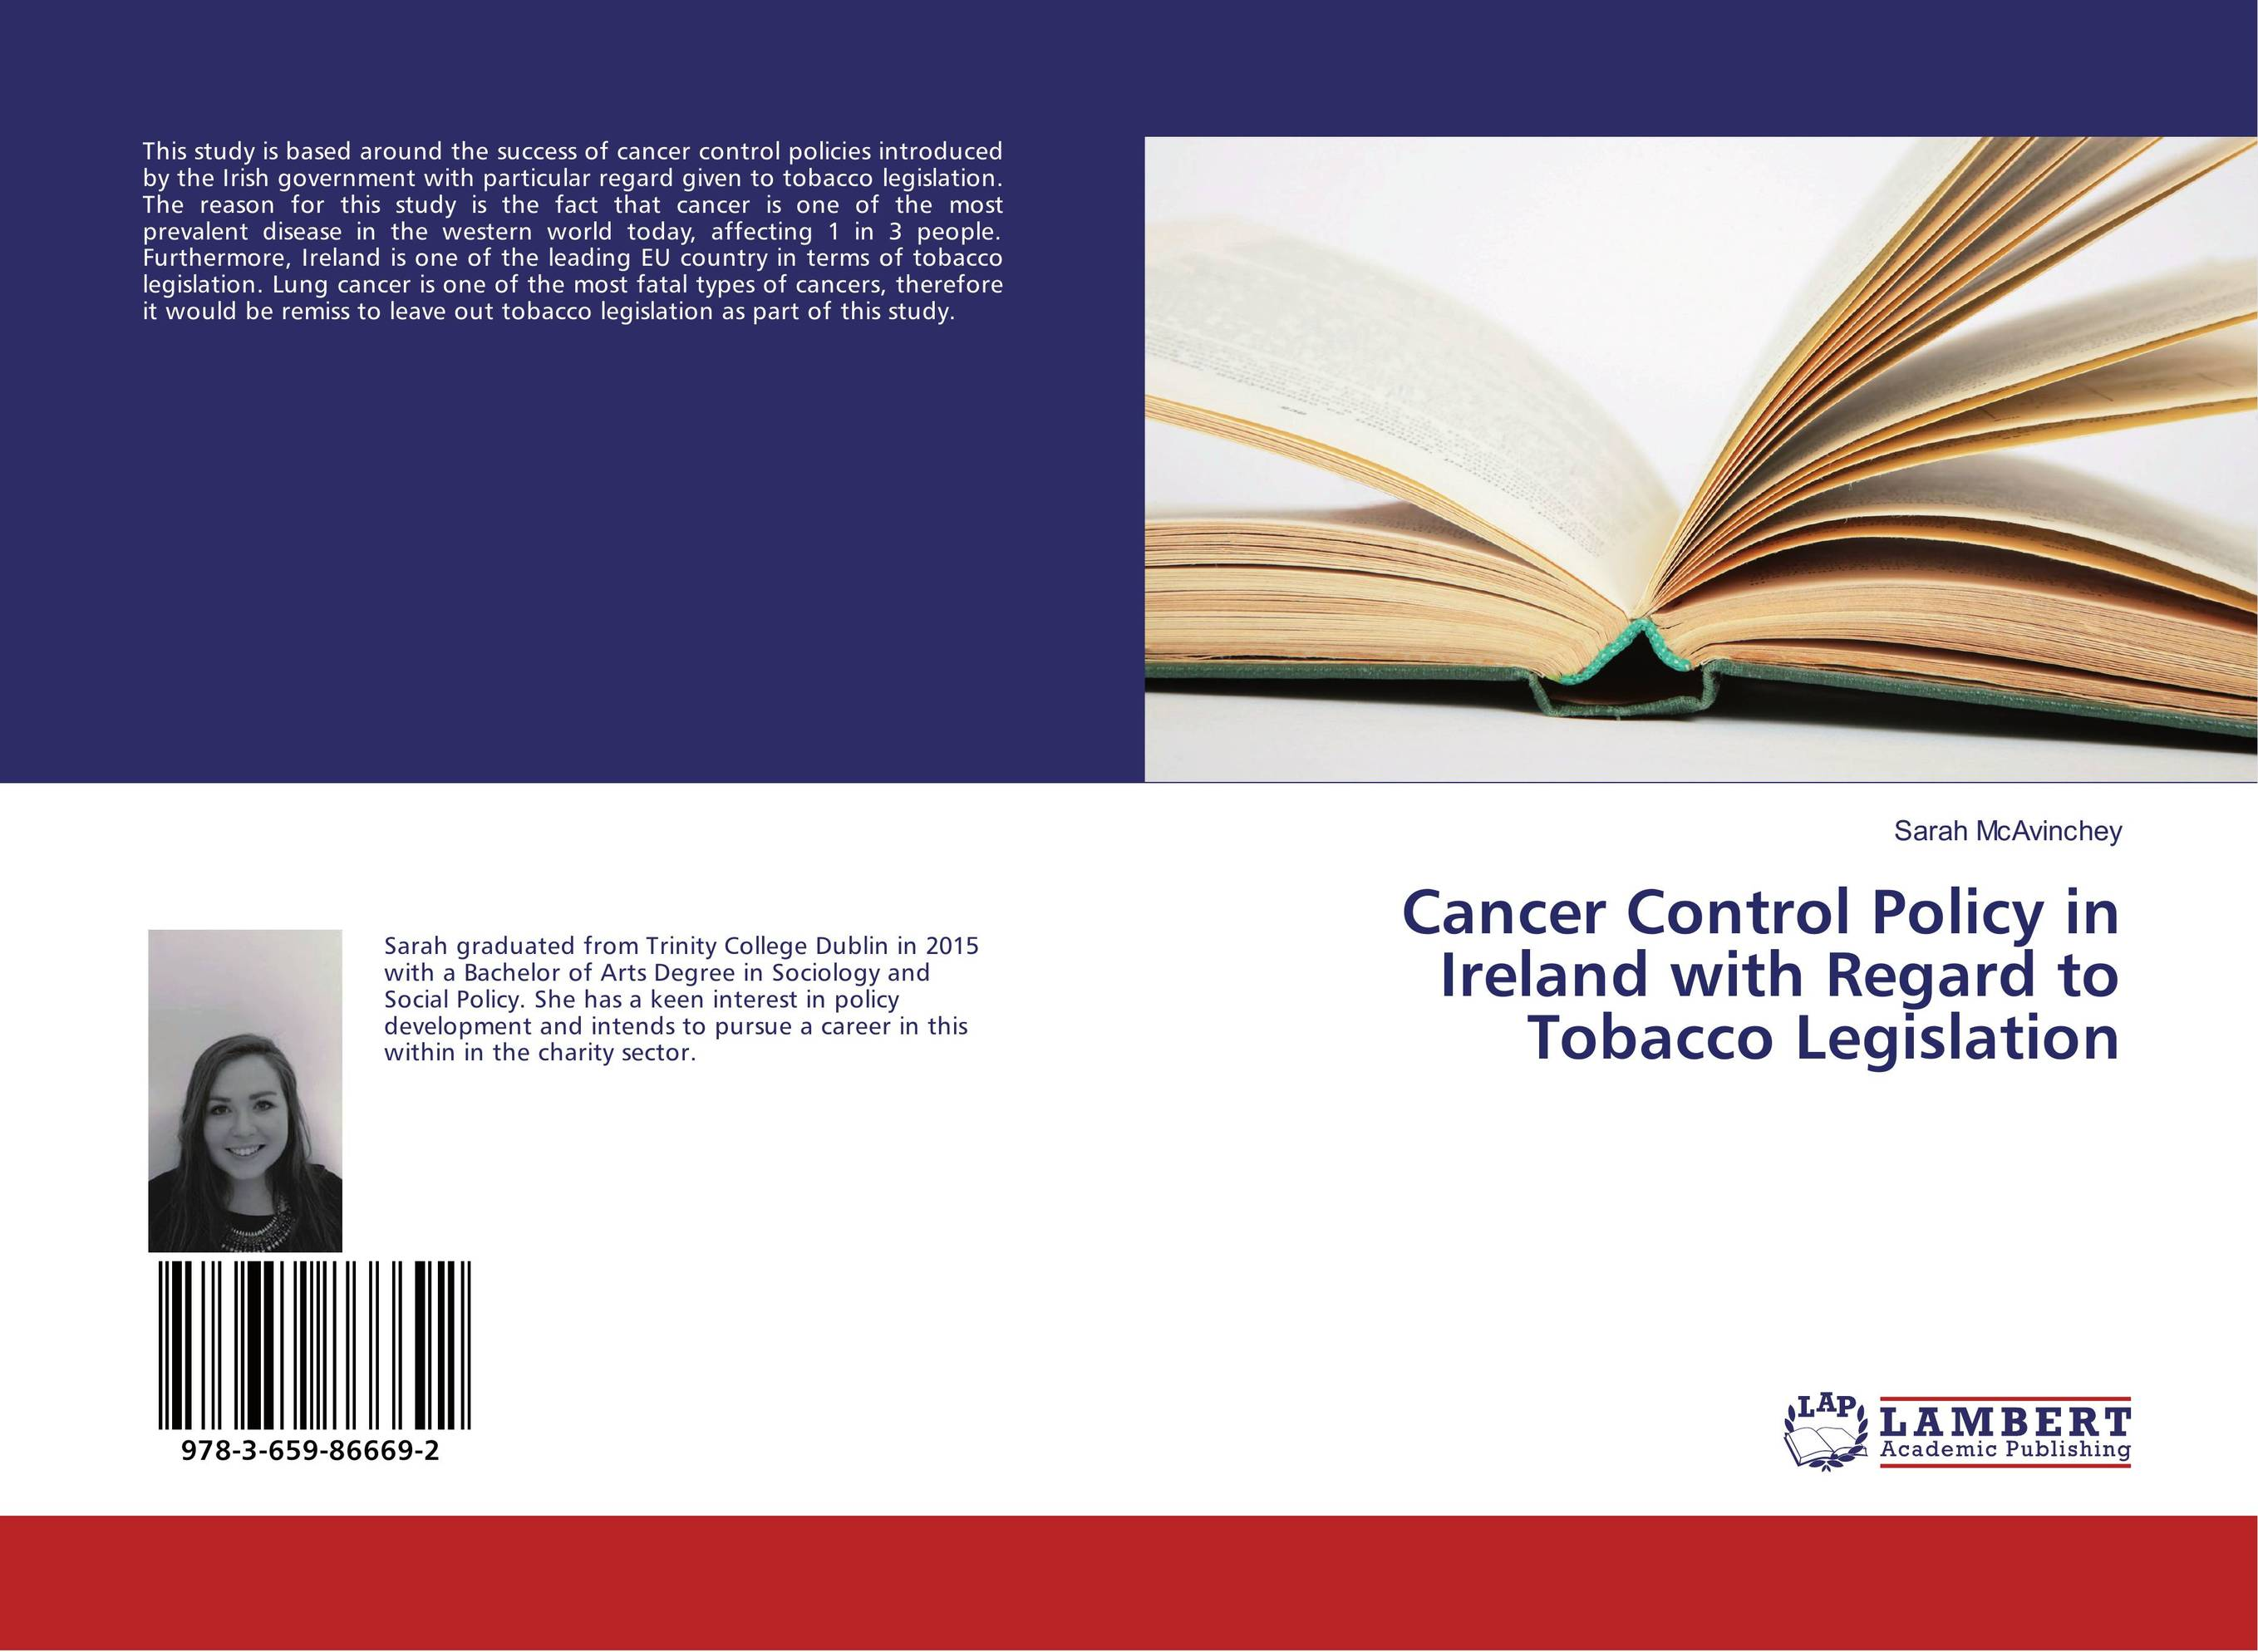 Cancer Control Policy in Ireland with Regard to Tobacco Legislation fatal misconception – the struggle to control world population